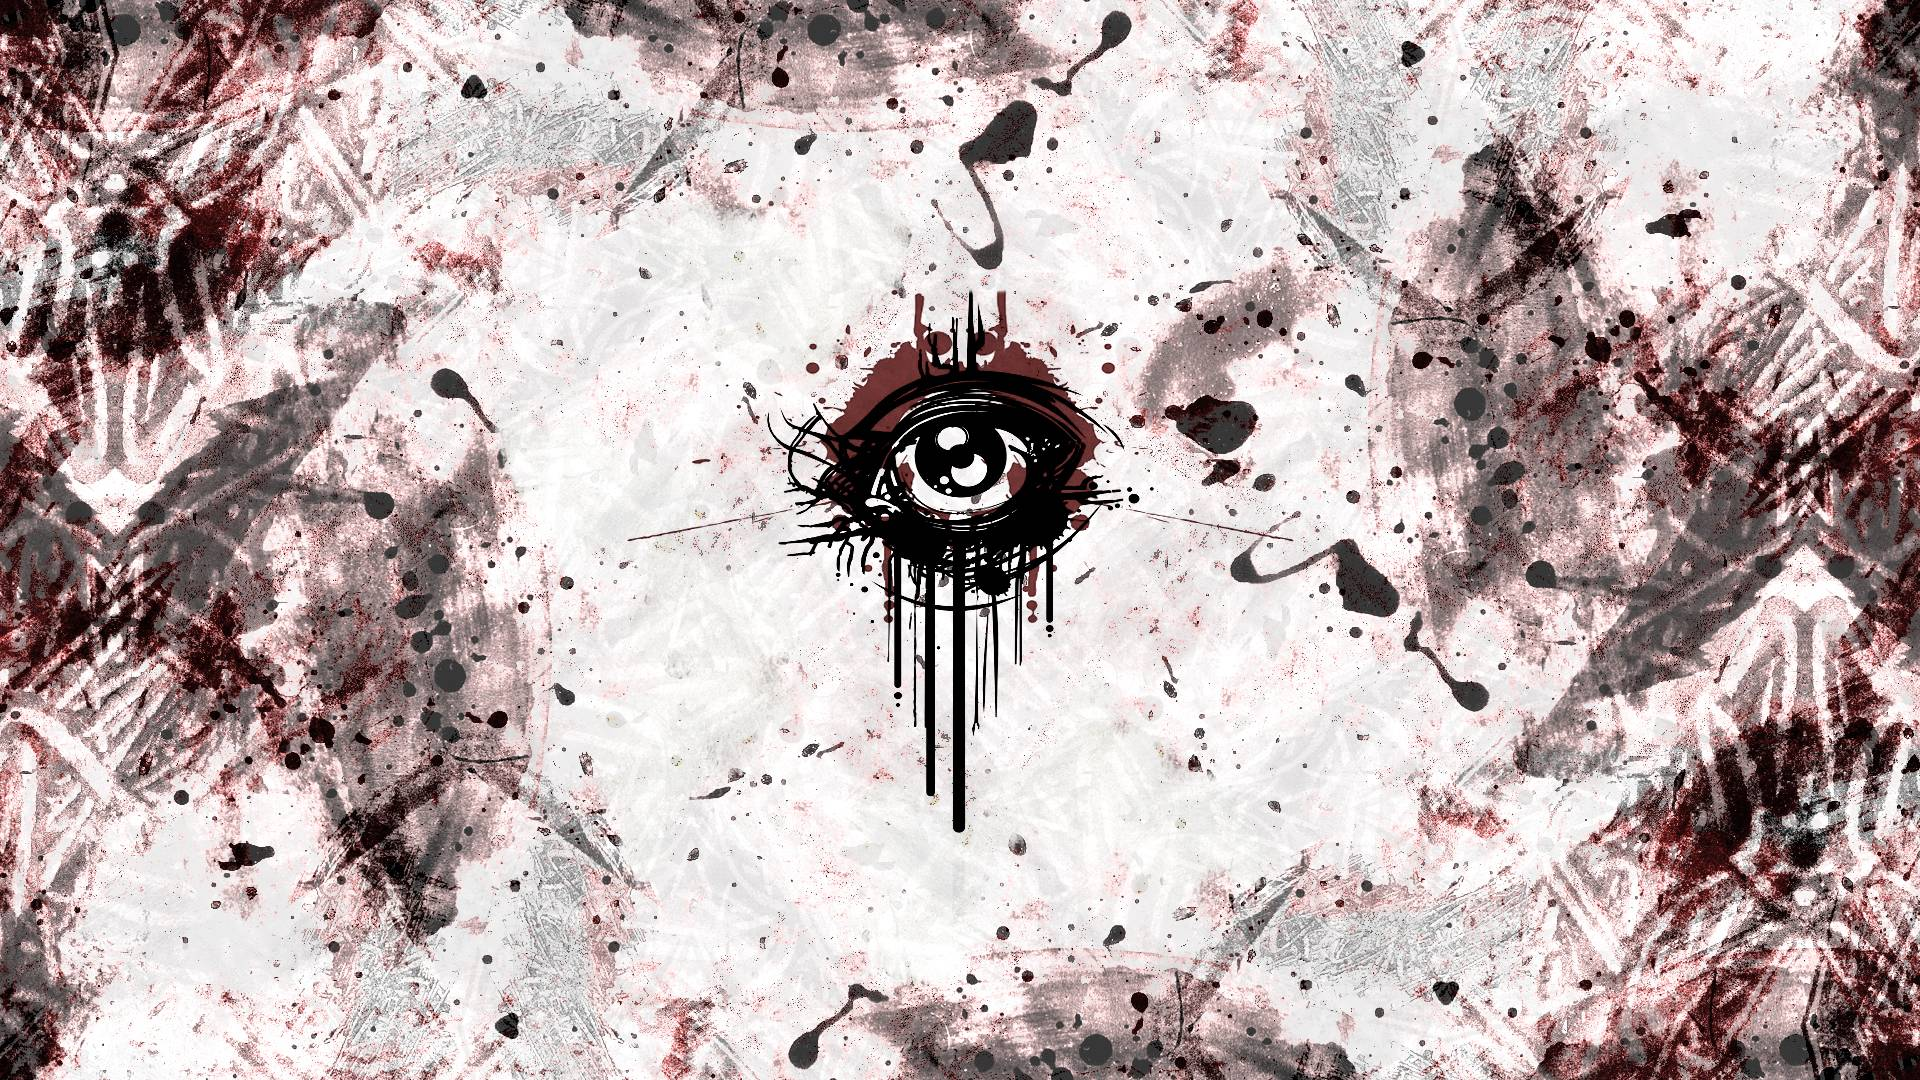 Aesthetic Grunge Laptop Wallpapers - Top Free Aesthetic ...